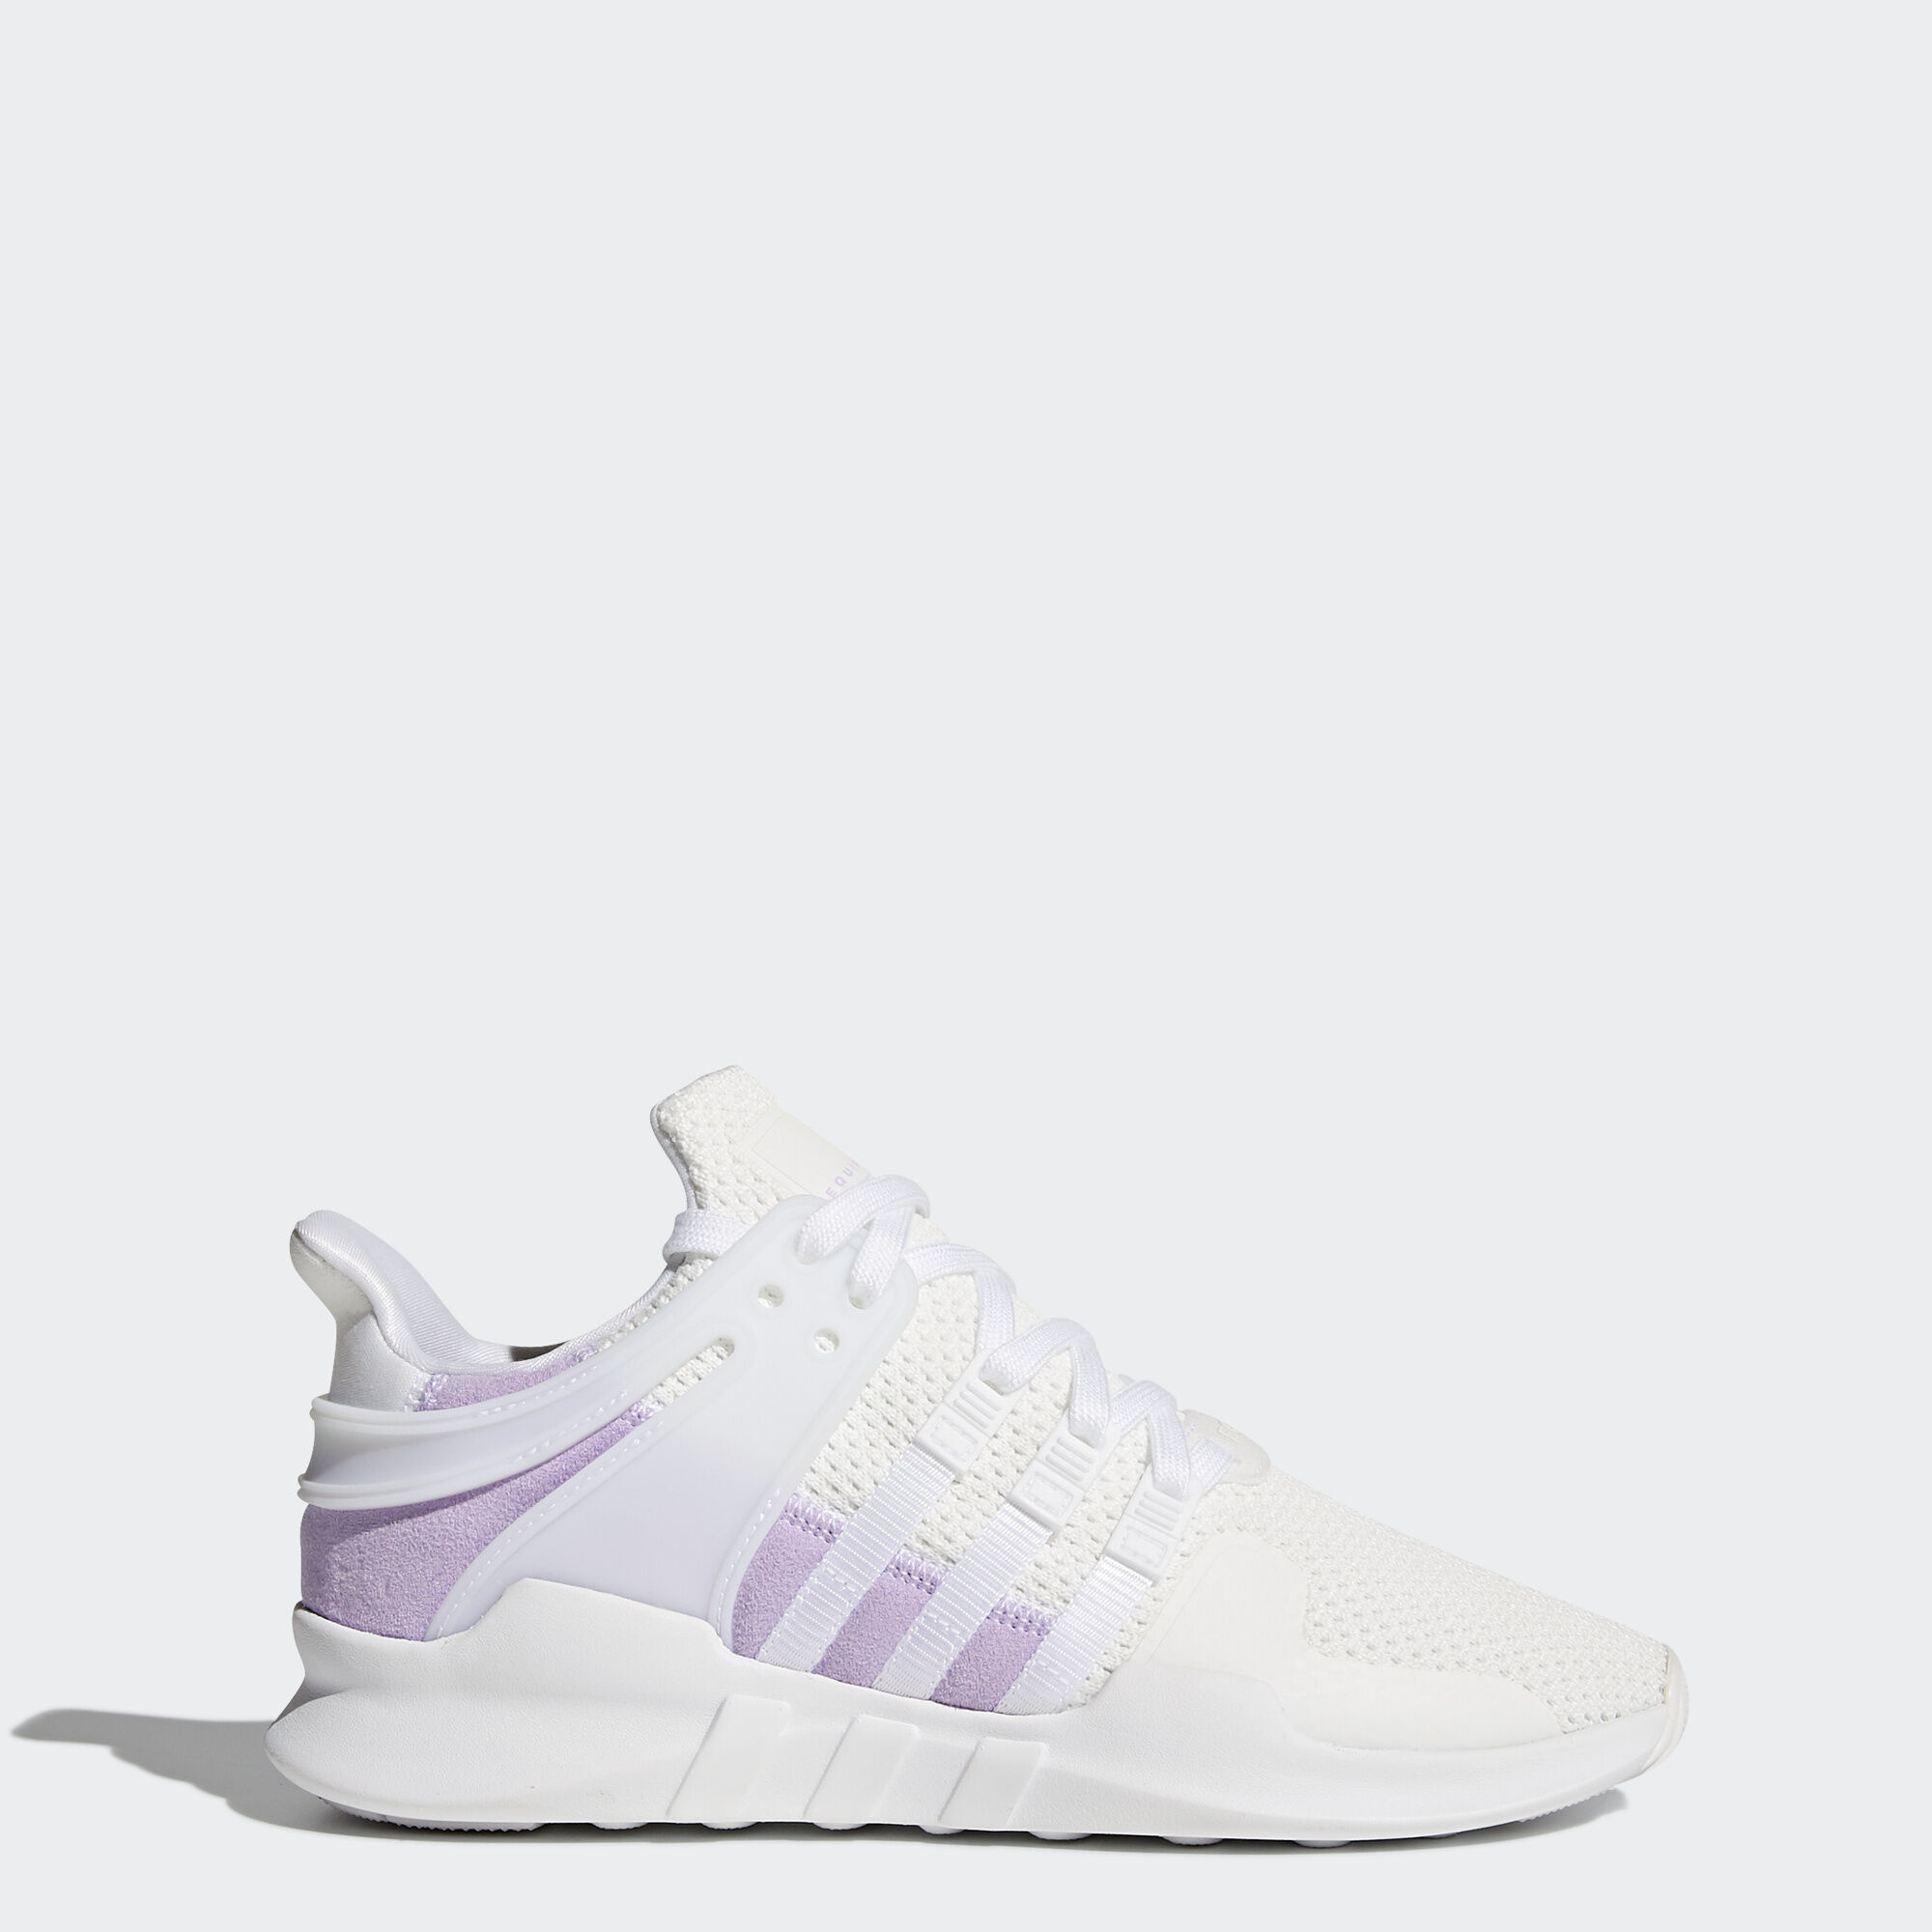 ADIDAS EQT SUPPORT RF PK OFF WHITE CORE BLACK